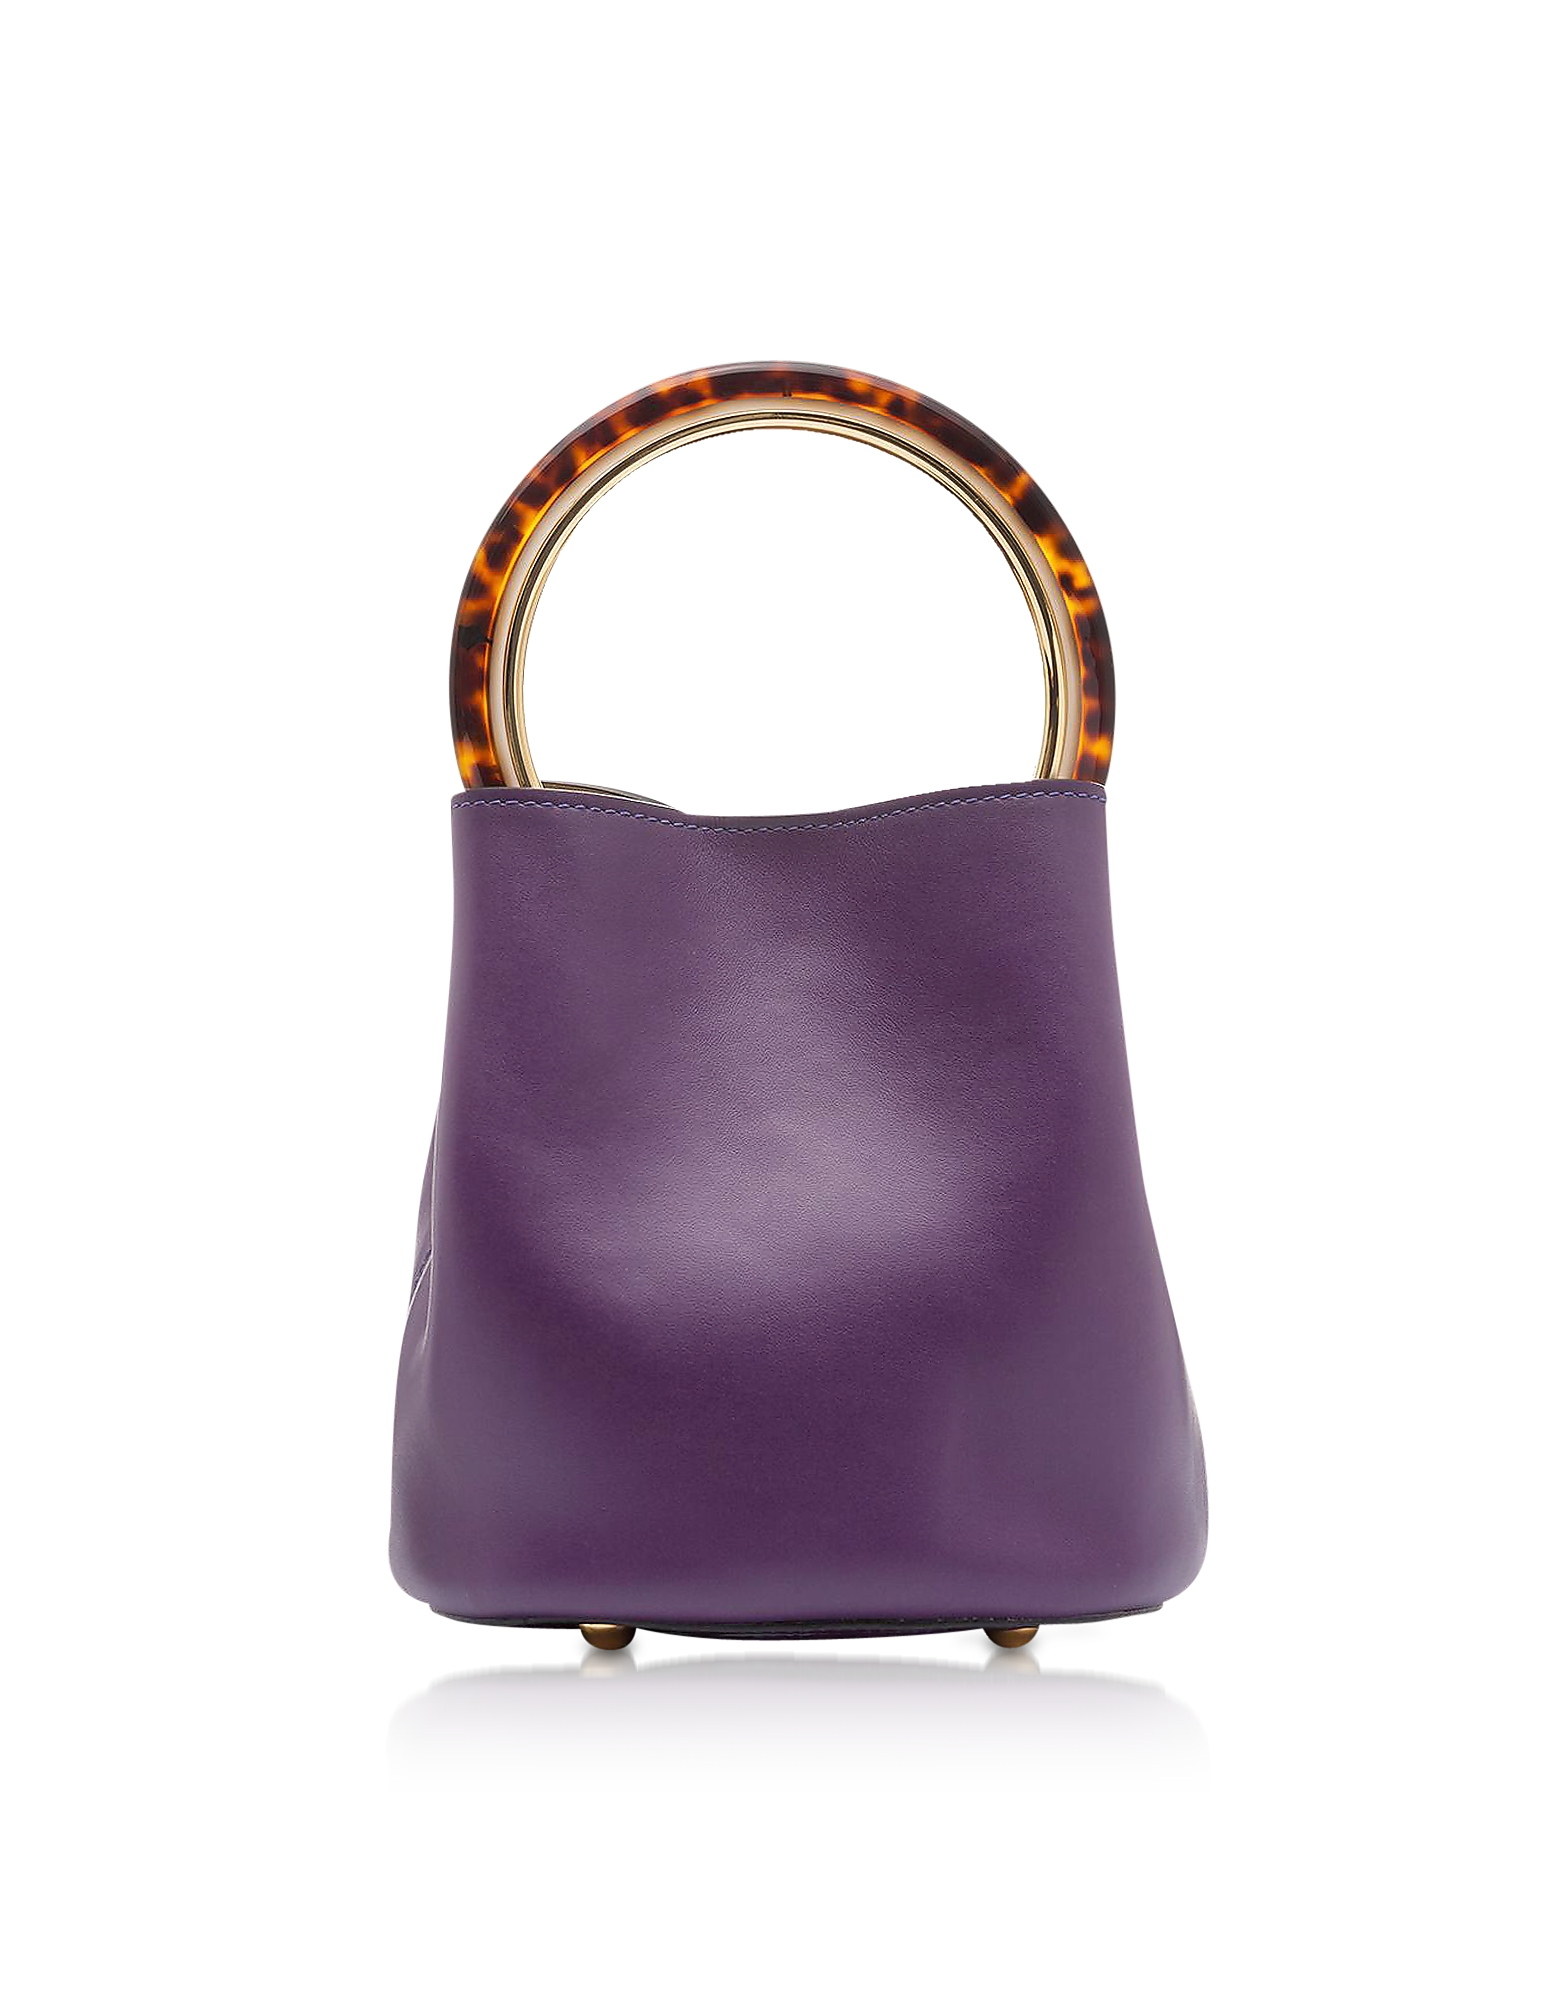 Image of Marni Designer Handbags, Dark Orchid and Ceramic Calfskin Pannier Bag